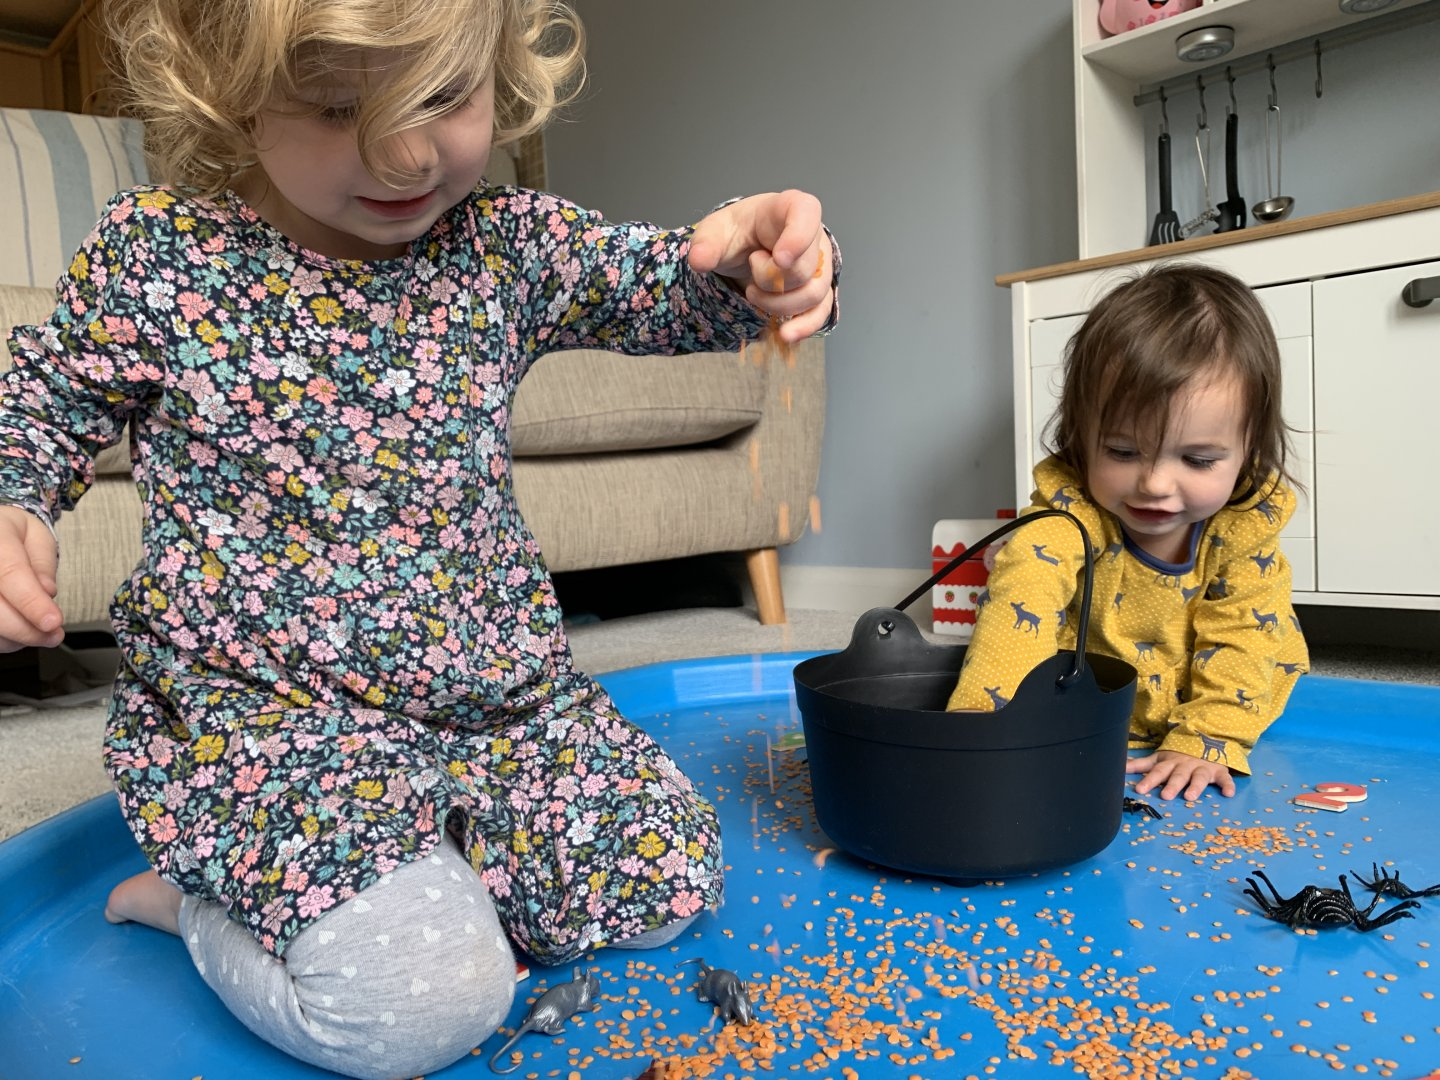 B digging her hand into the toy cauldron in the background, while M sprinkles lentils into the tuff spot in the foreground.